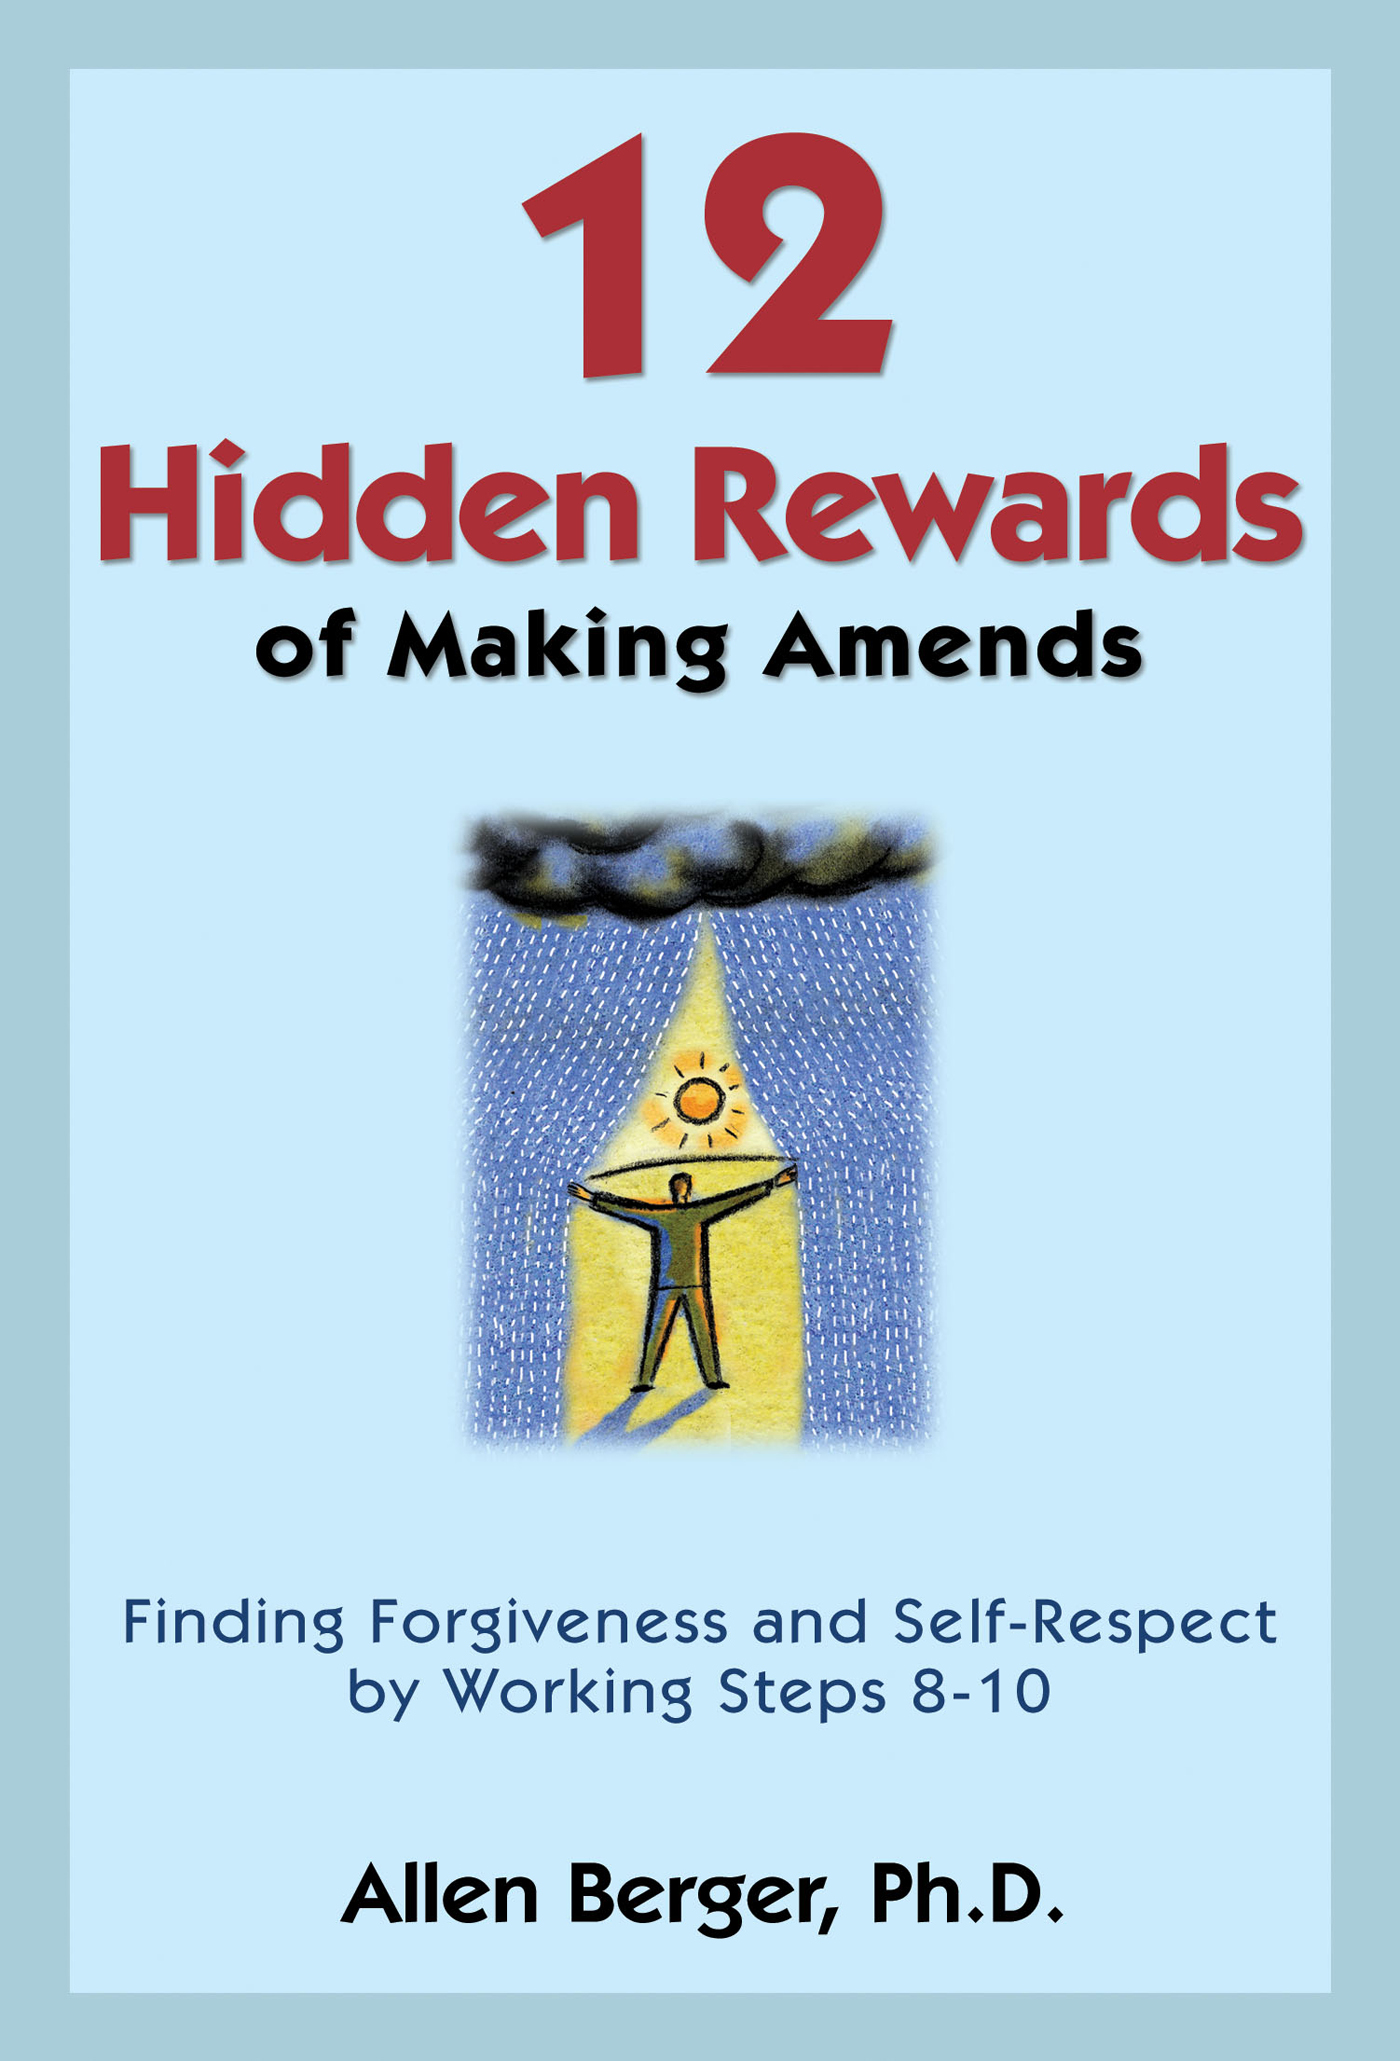 12 Hidden Rewards of Making Amends